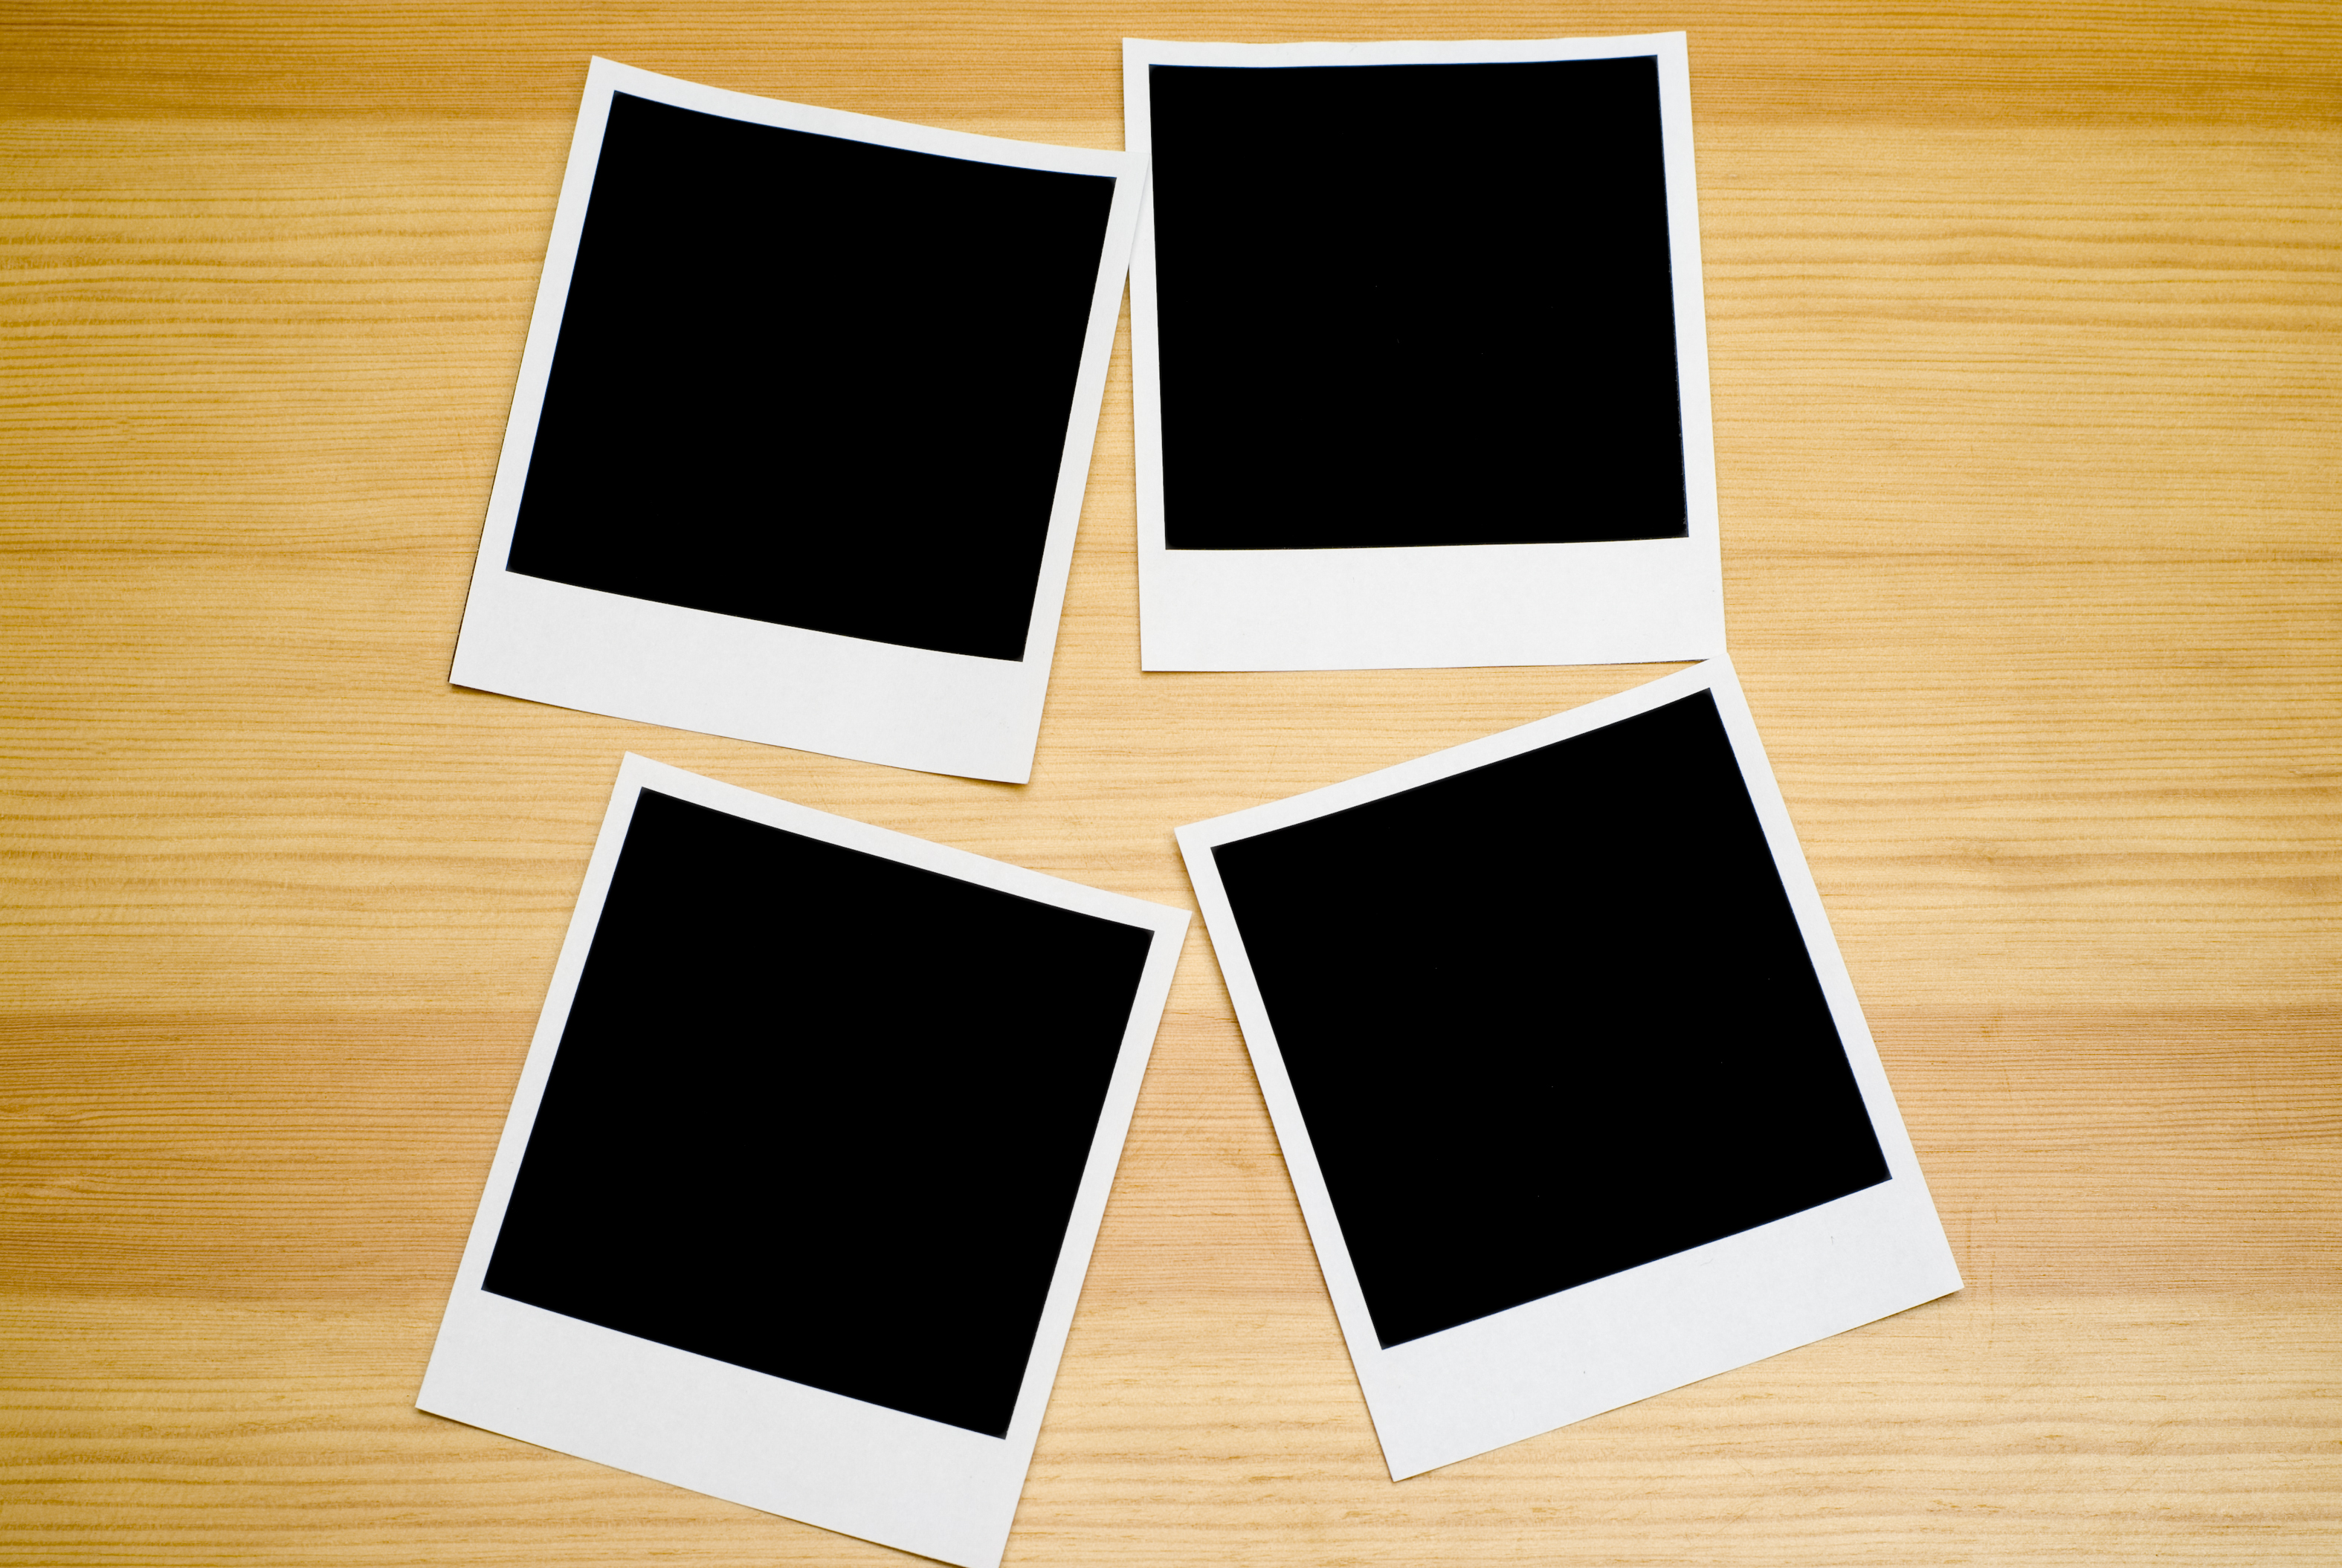 Four empty pictures to be used easily in designs.